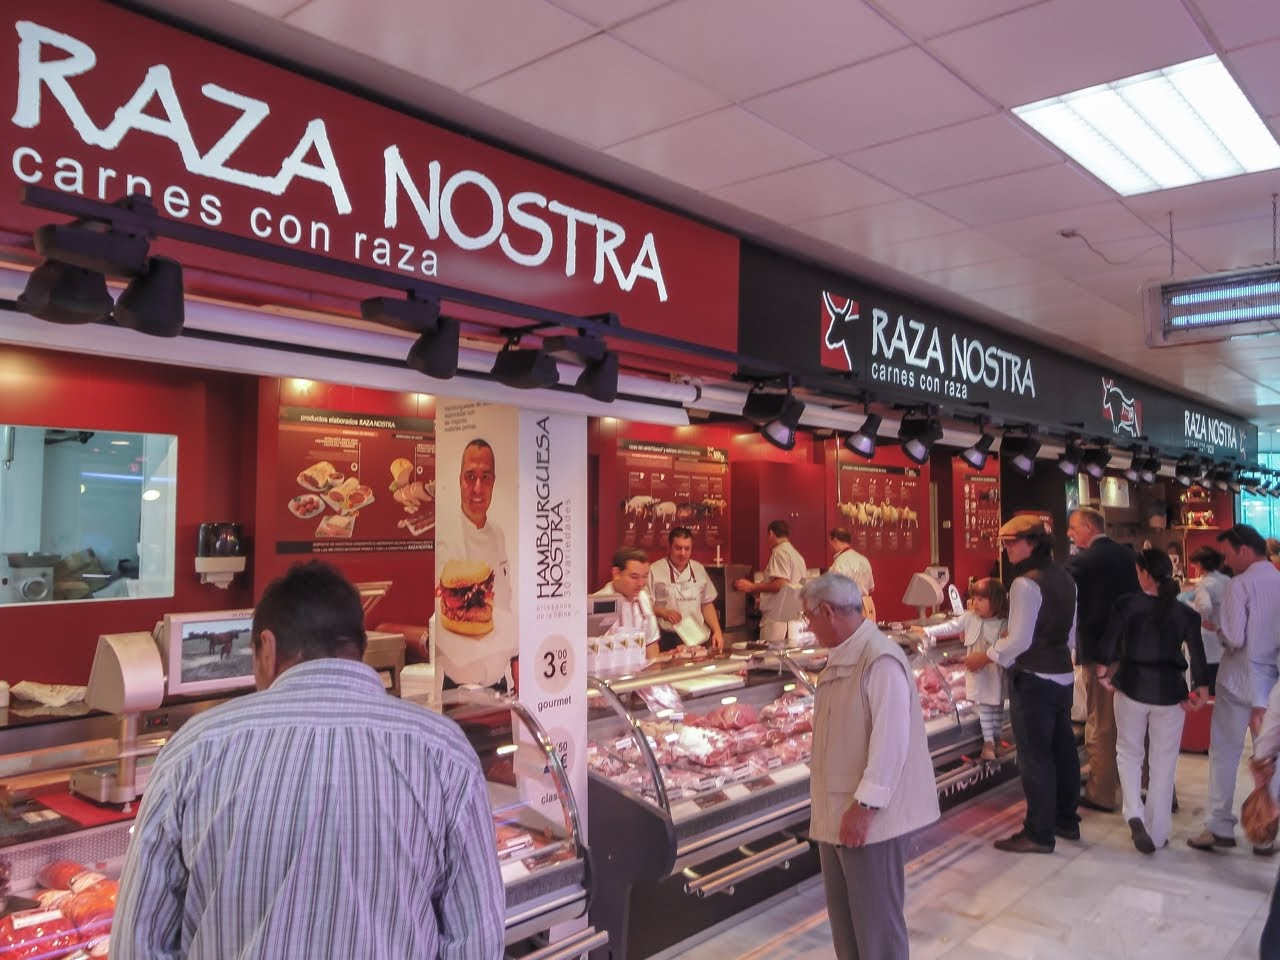 A vendor called Raza Nostra selling all kinds fo meats